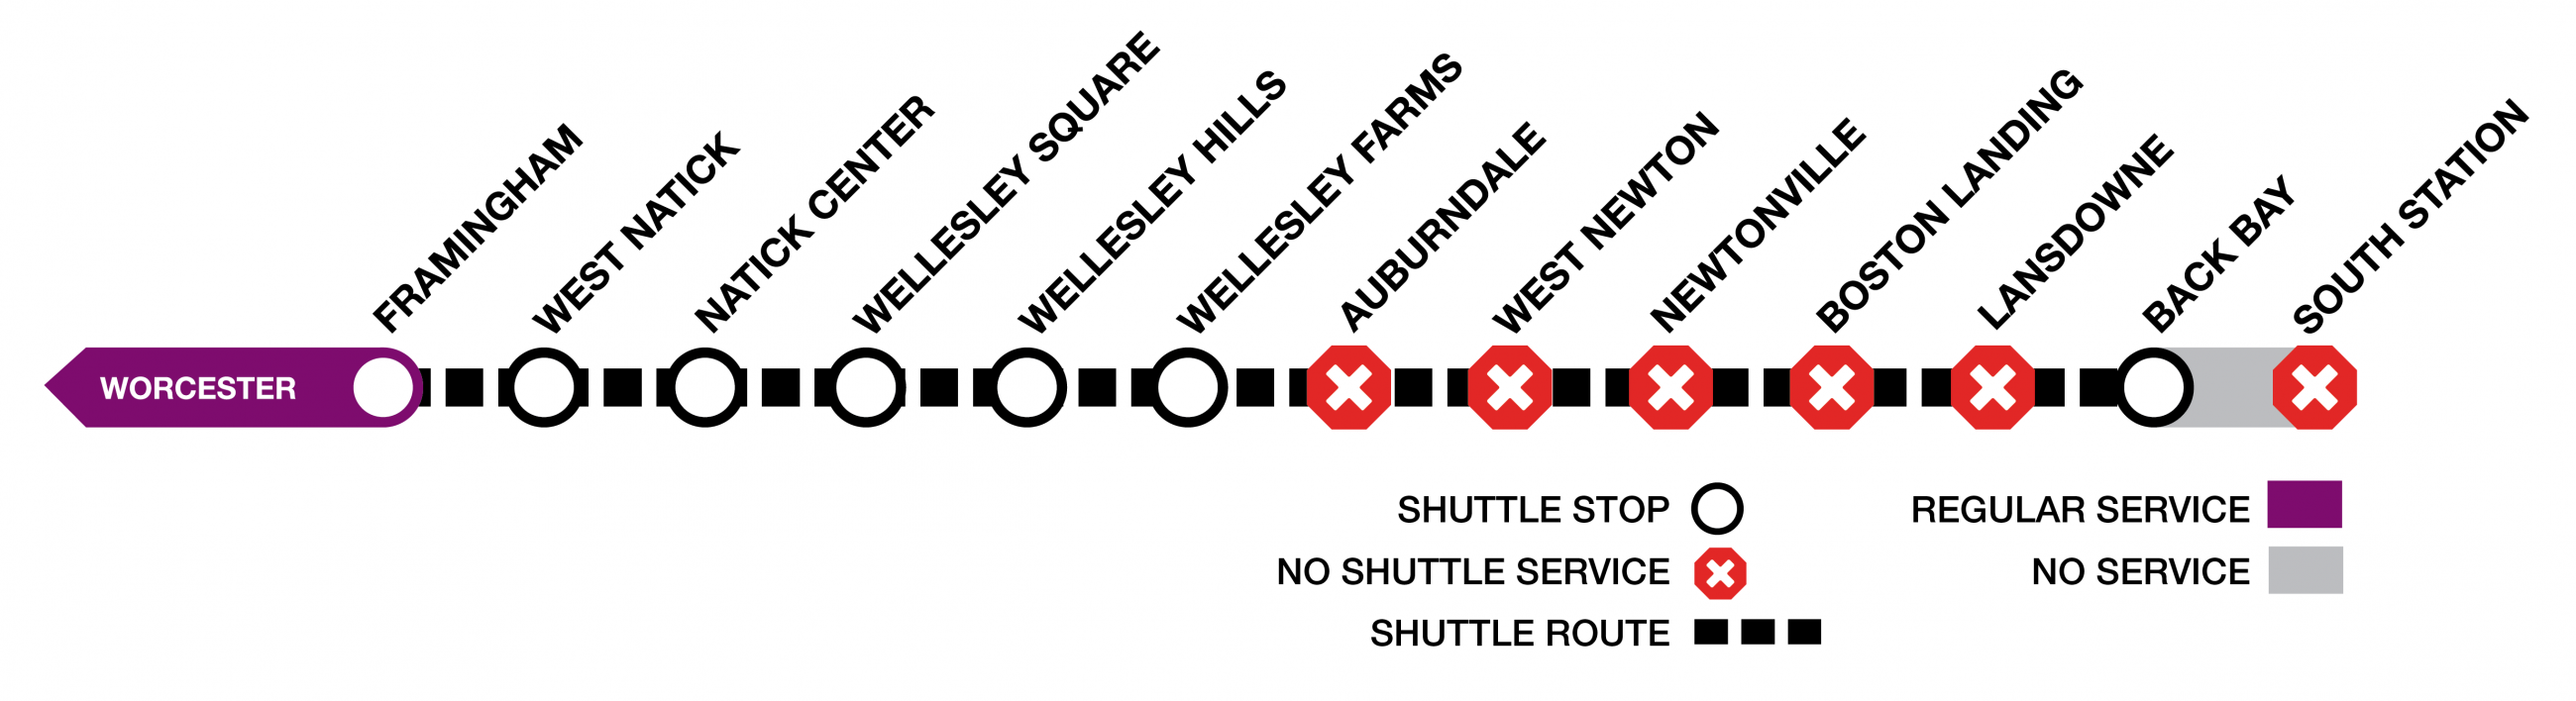 Commuter Rail service from Worcester to Framingham, then bus shuttles from Framingham to Wellesley Farms, then the shuttle runs express to Back Bay.